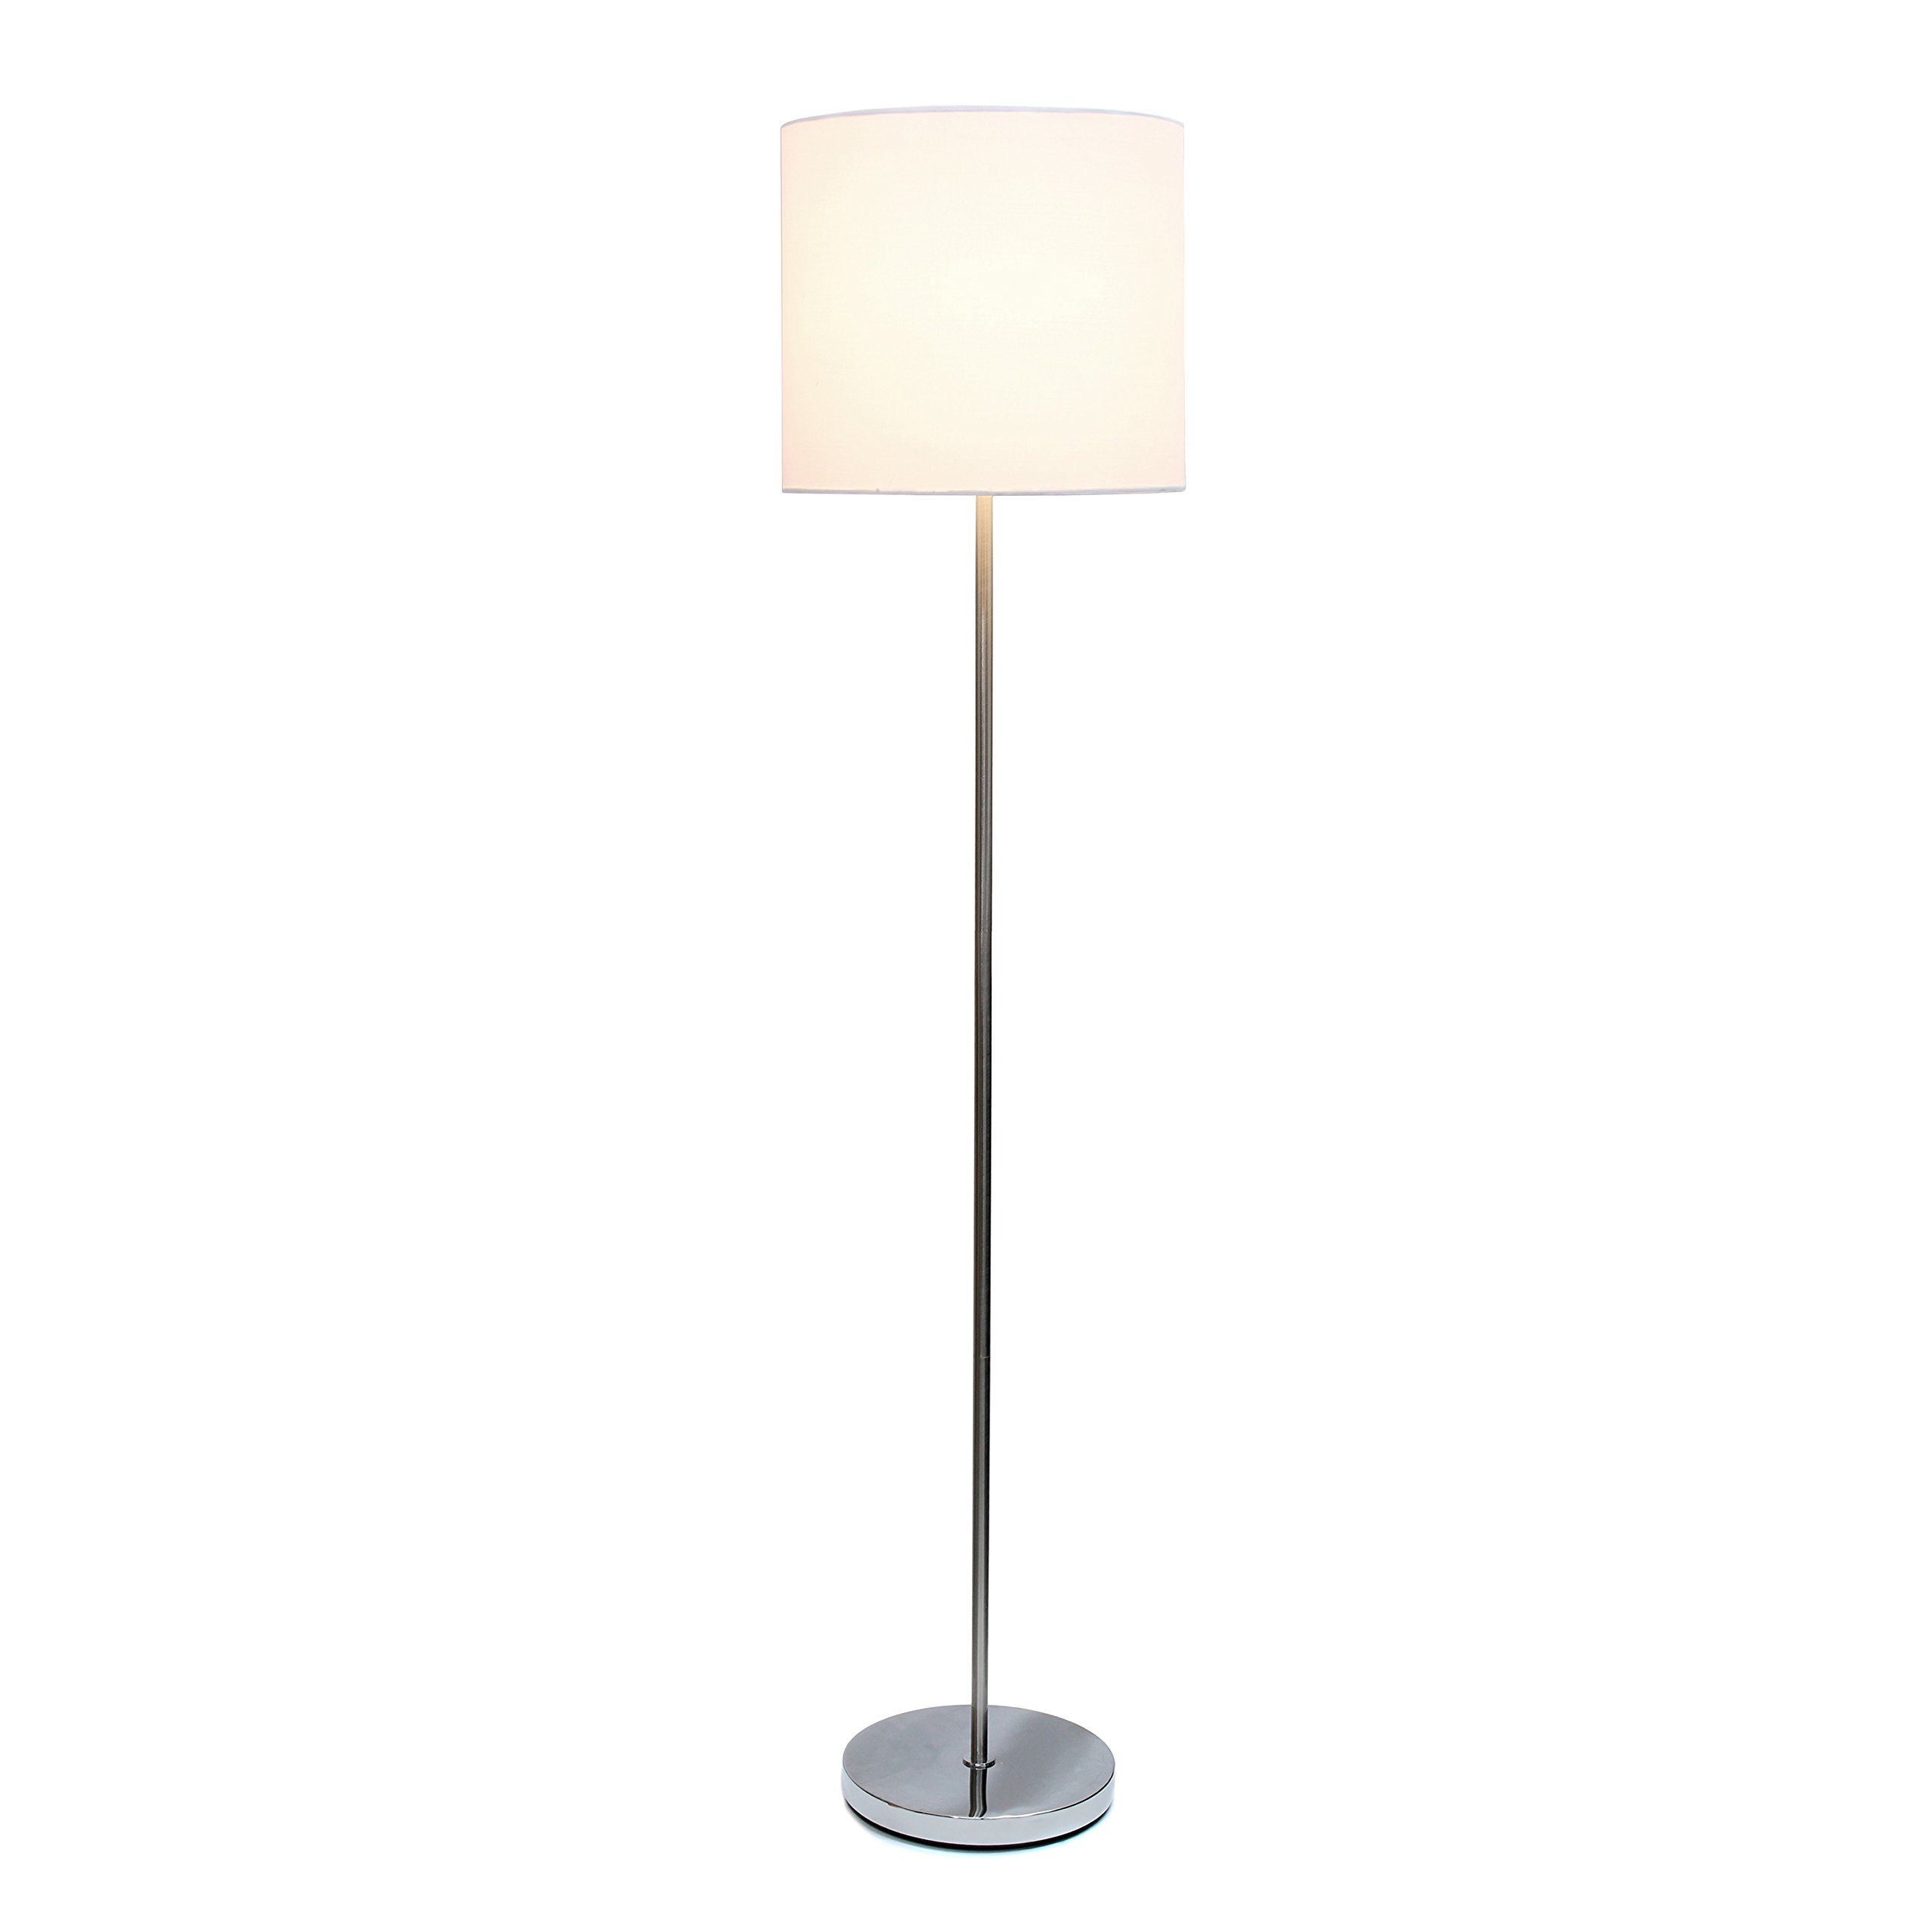 Simple Designs Home LF2004-WHT Brushed Nickel Drum Shade Floor Lamp, White Brushed Nickel Drum Shade Floor Lamp, 13.25'' x 13.25'' x 58.25'', White by Simple Designs